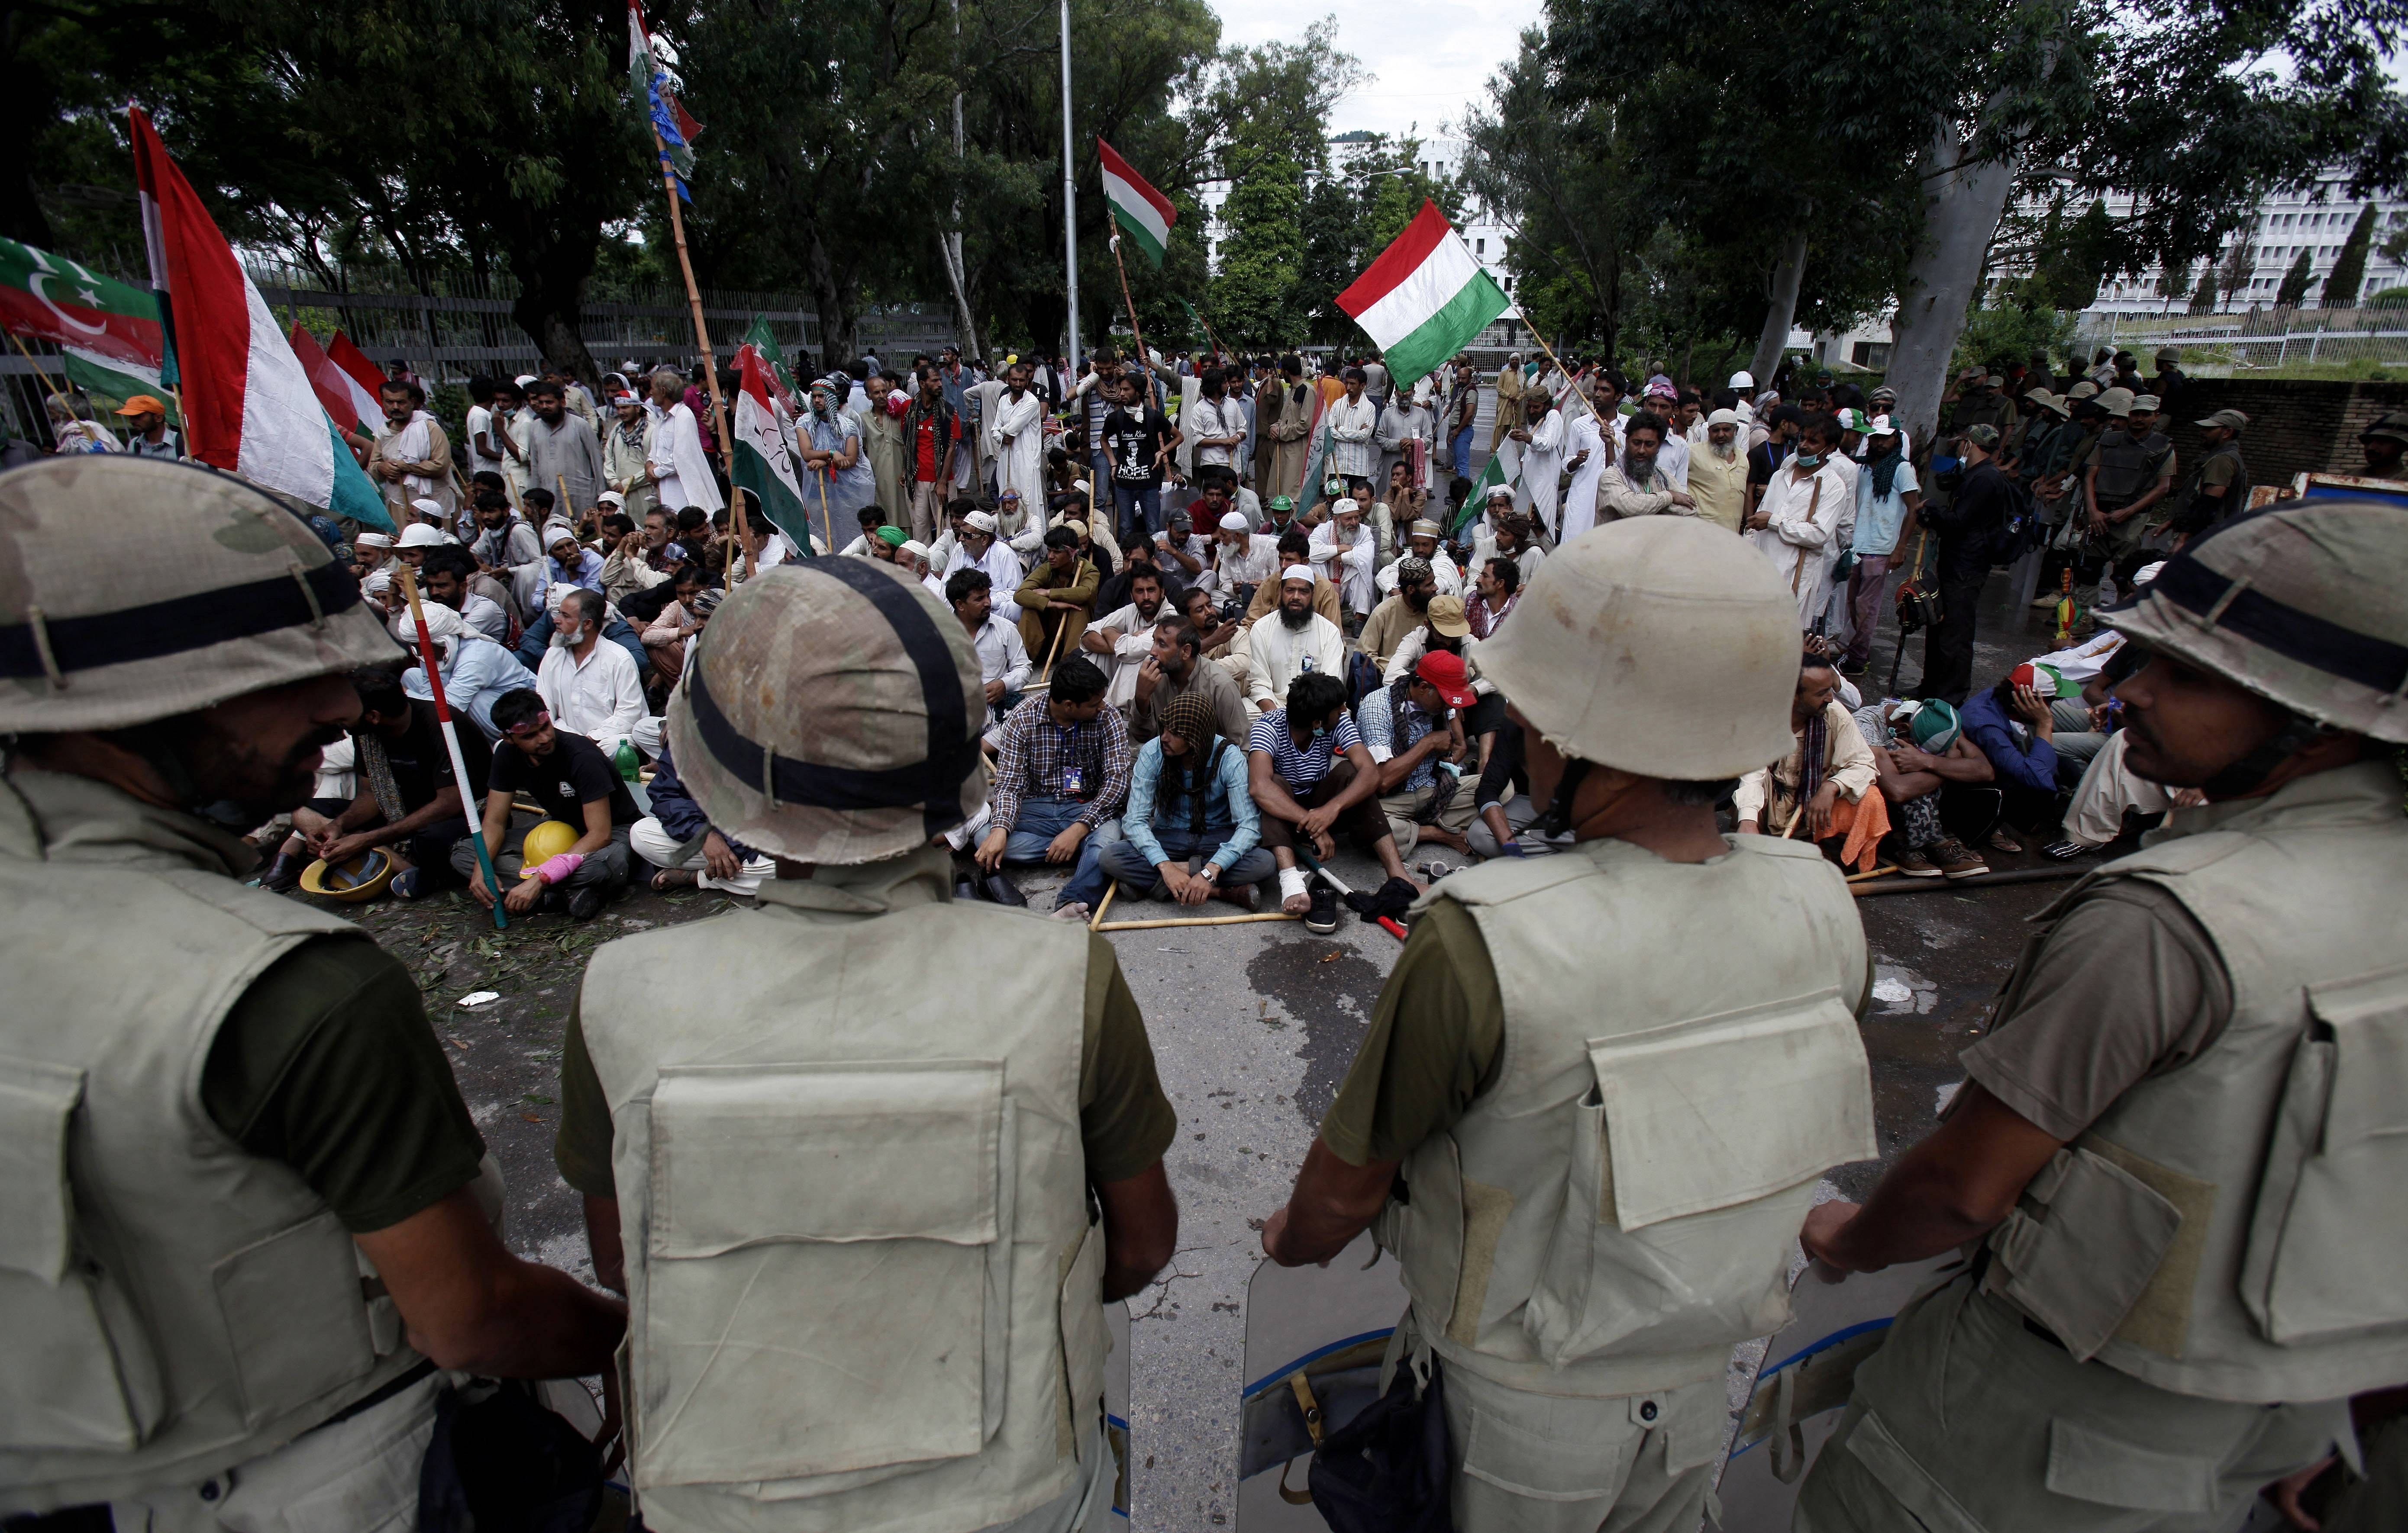 Pakistani troops stand guard as supporters of anti-government Muslim cleric Tahir-ul-Qadri stage a sit in protest close to Prime Minister's home in Islamabad Monday.